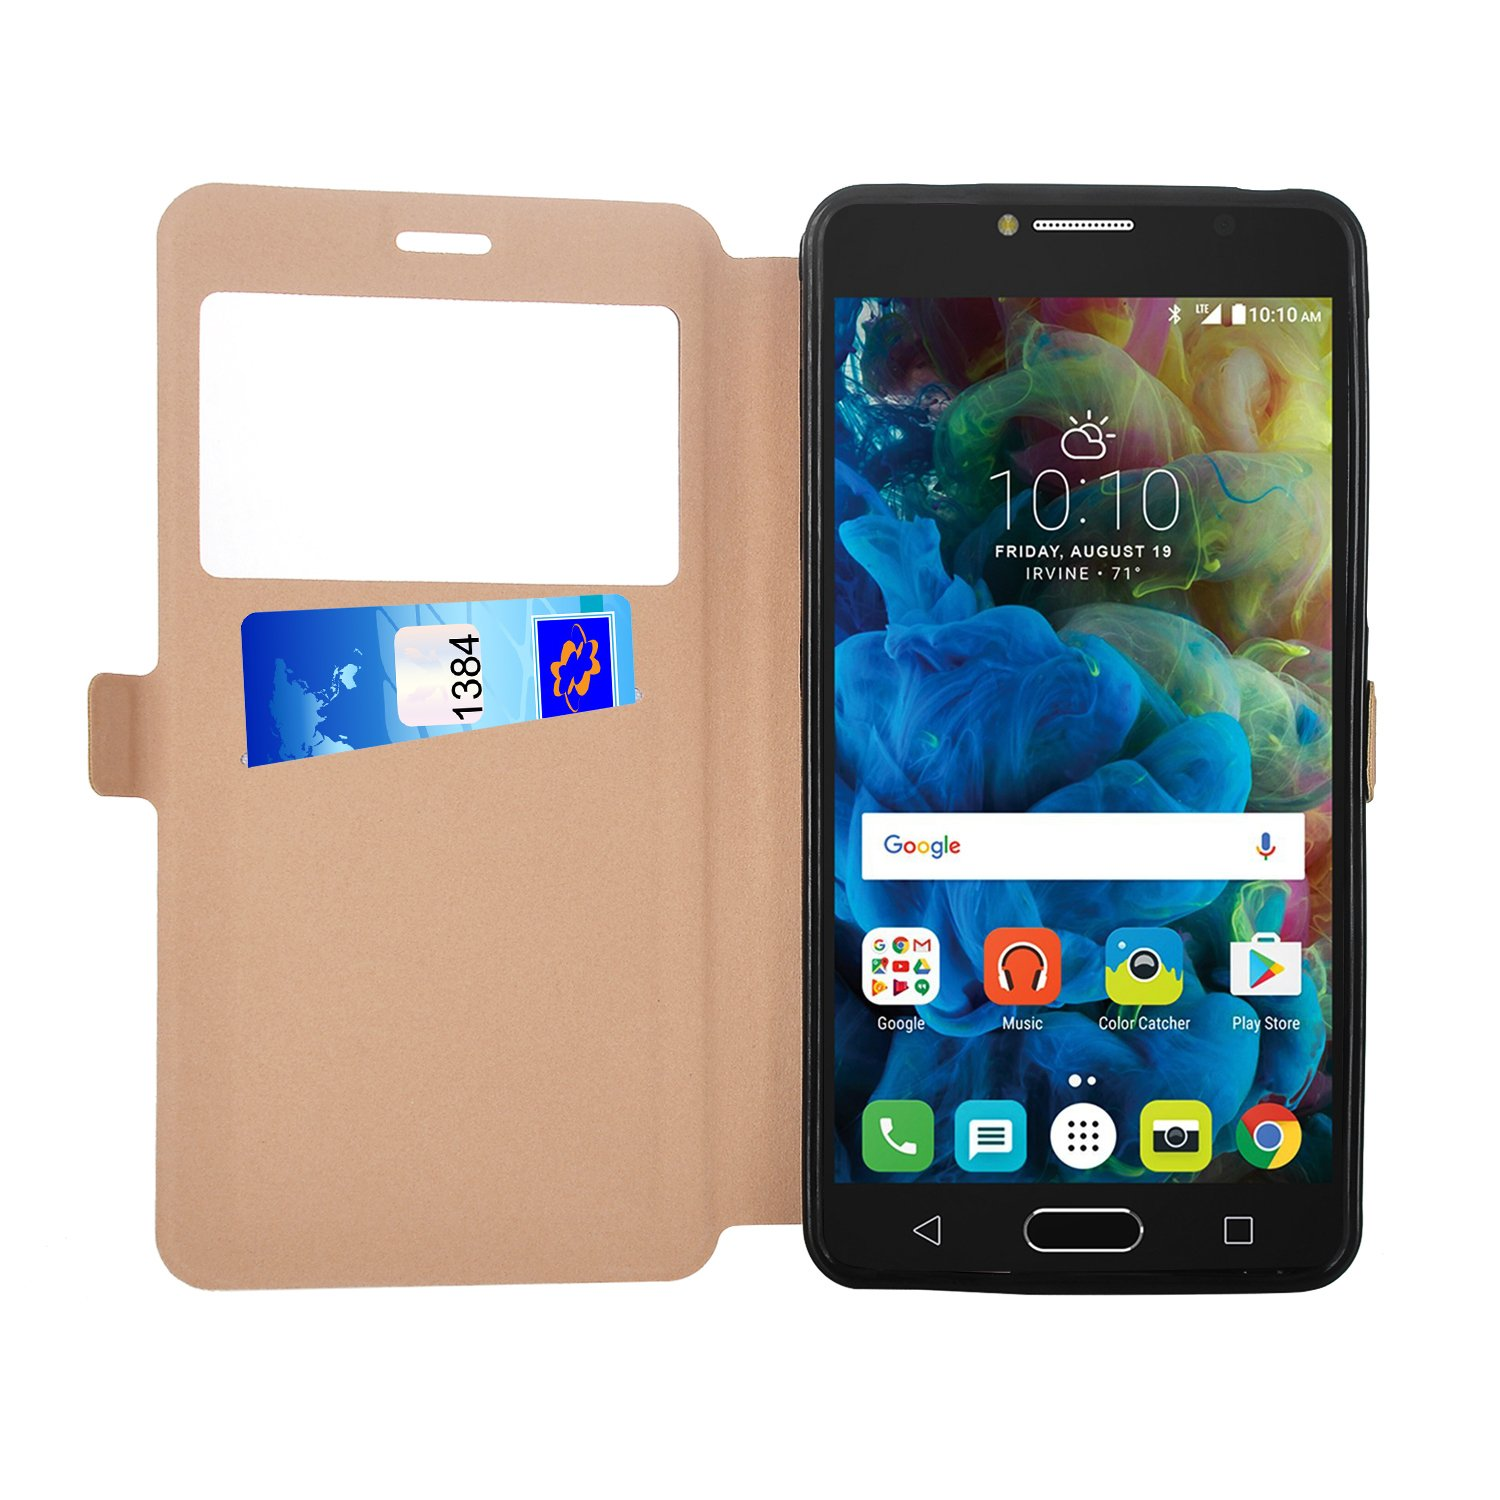 Amazon.com: Alcatel POP 4S case, KuGi Alcatel POP 4S case - BW style ultra-thin PU Leather Case for Alcatel POP 4S smartphone (Gold): Cell Phones & ...